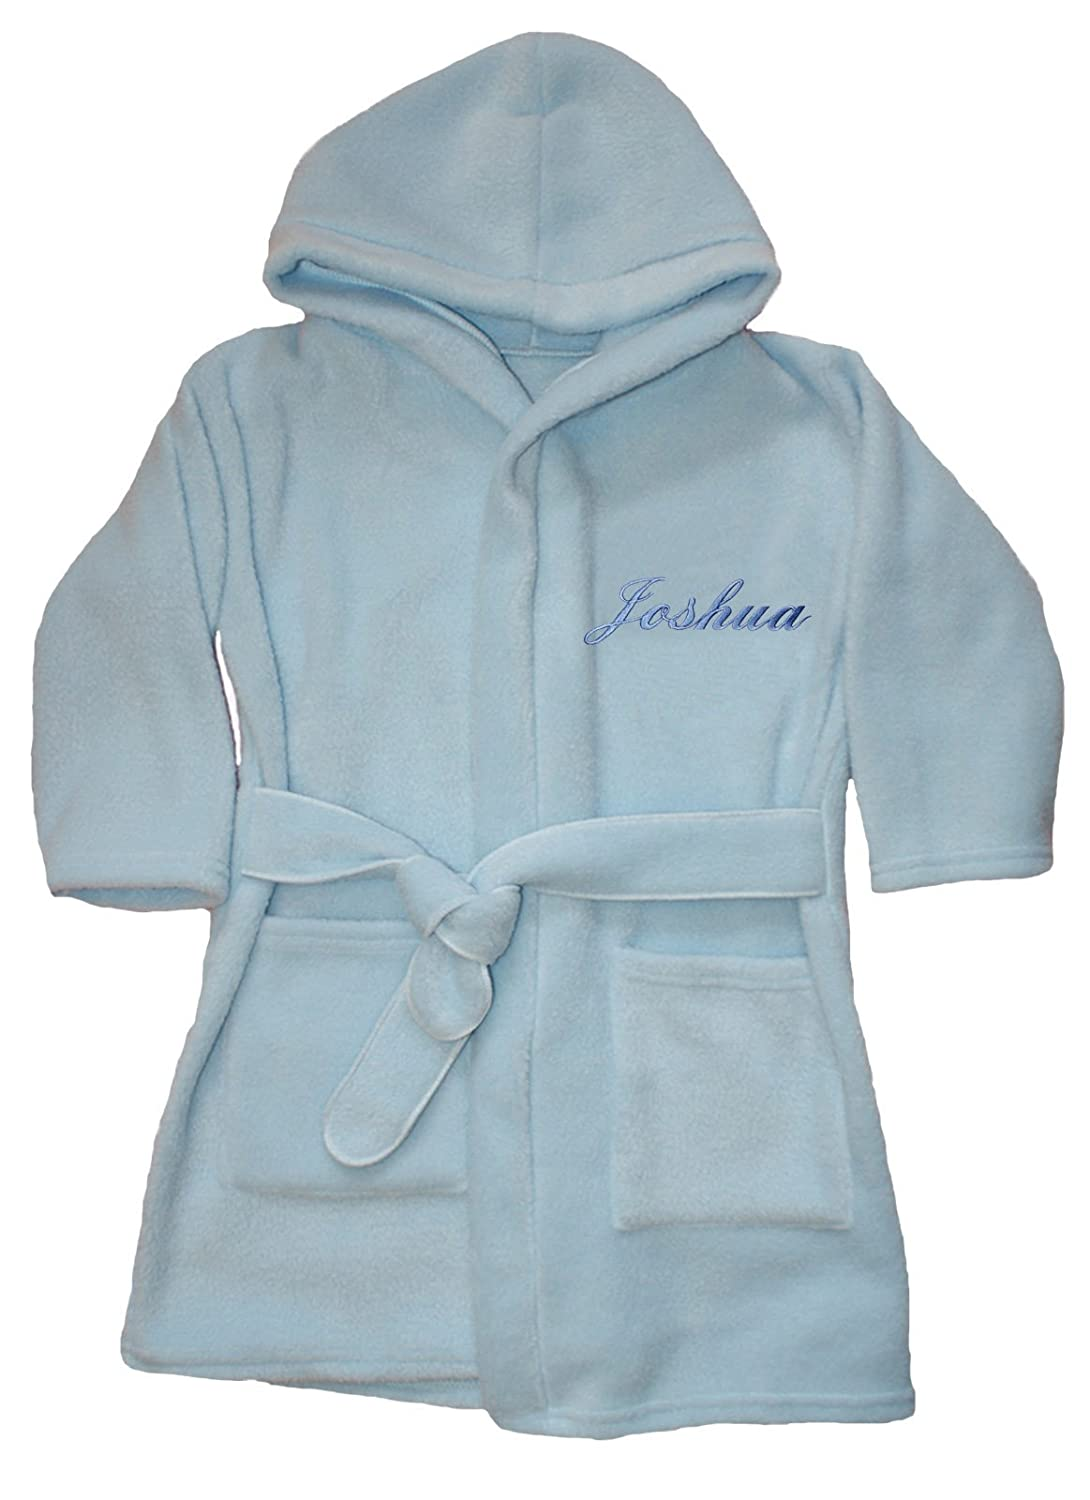 Little Stitches Boys Luxury Personalised Super Soft Fleece Dressing Gown/Bath Robe